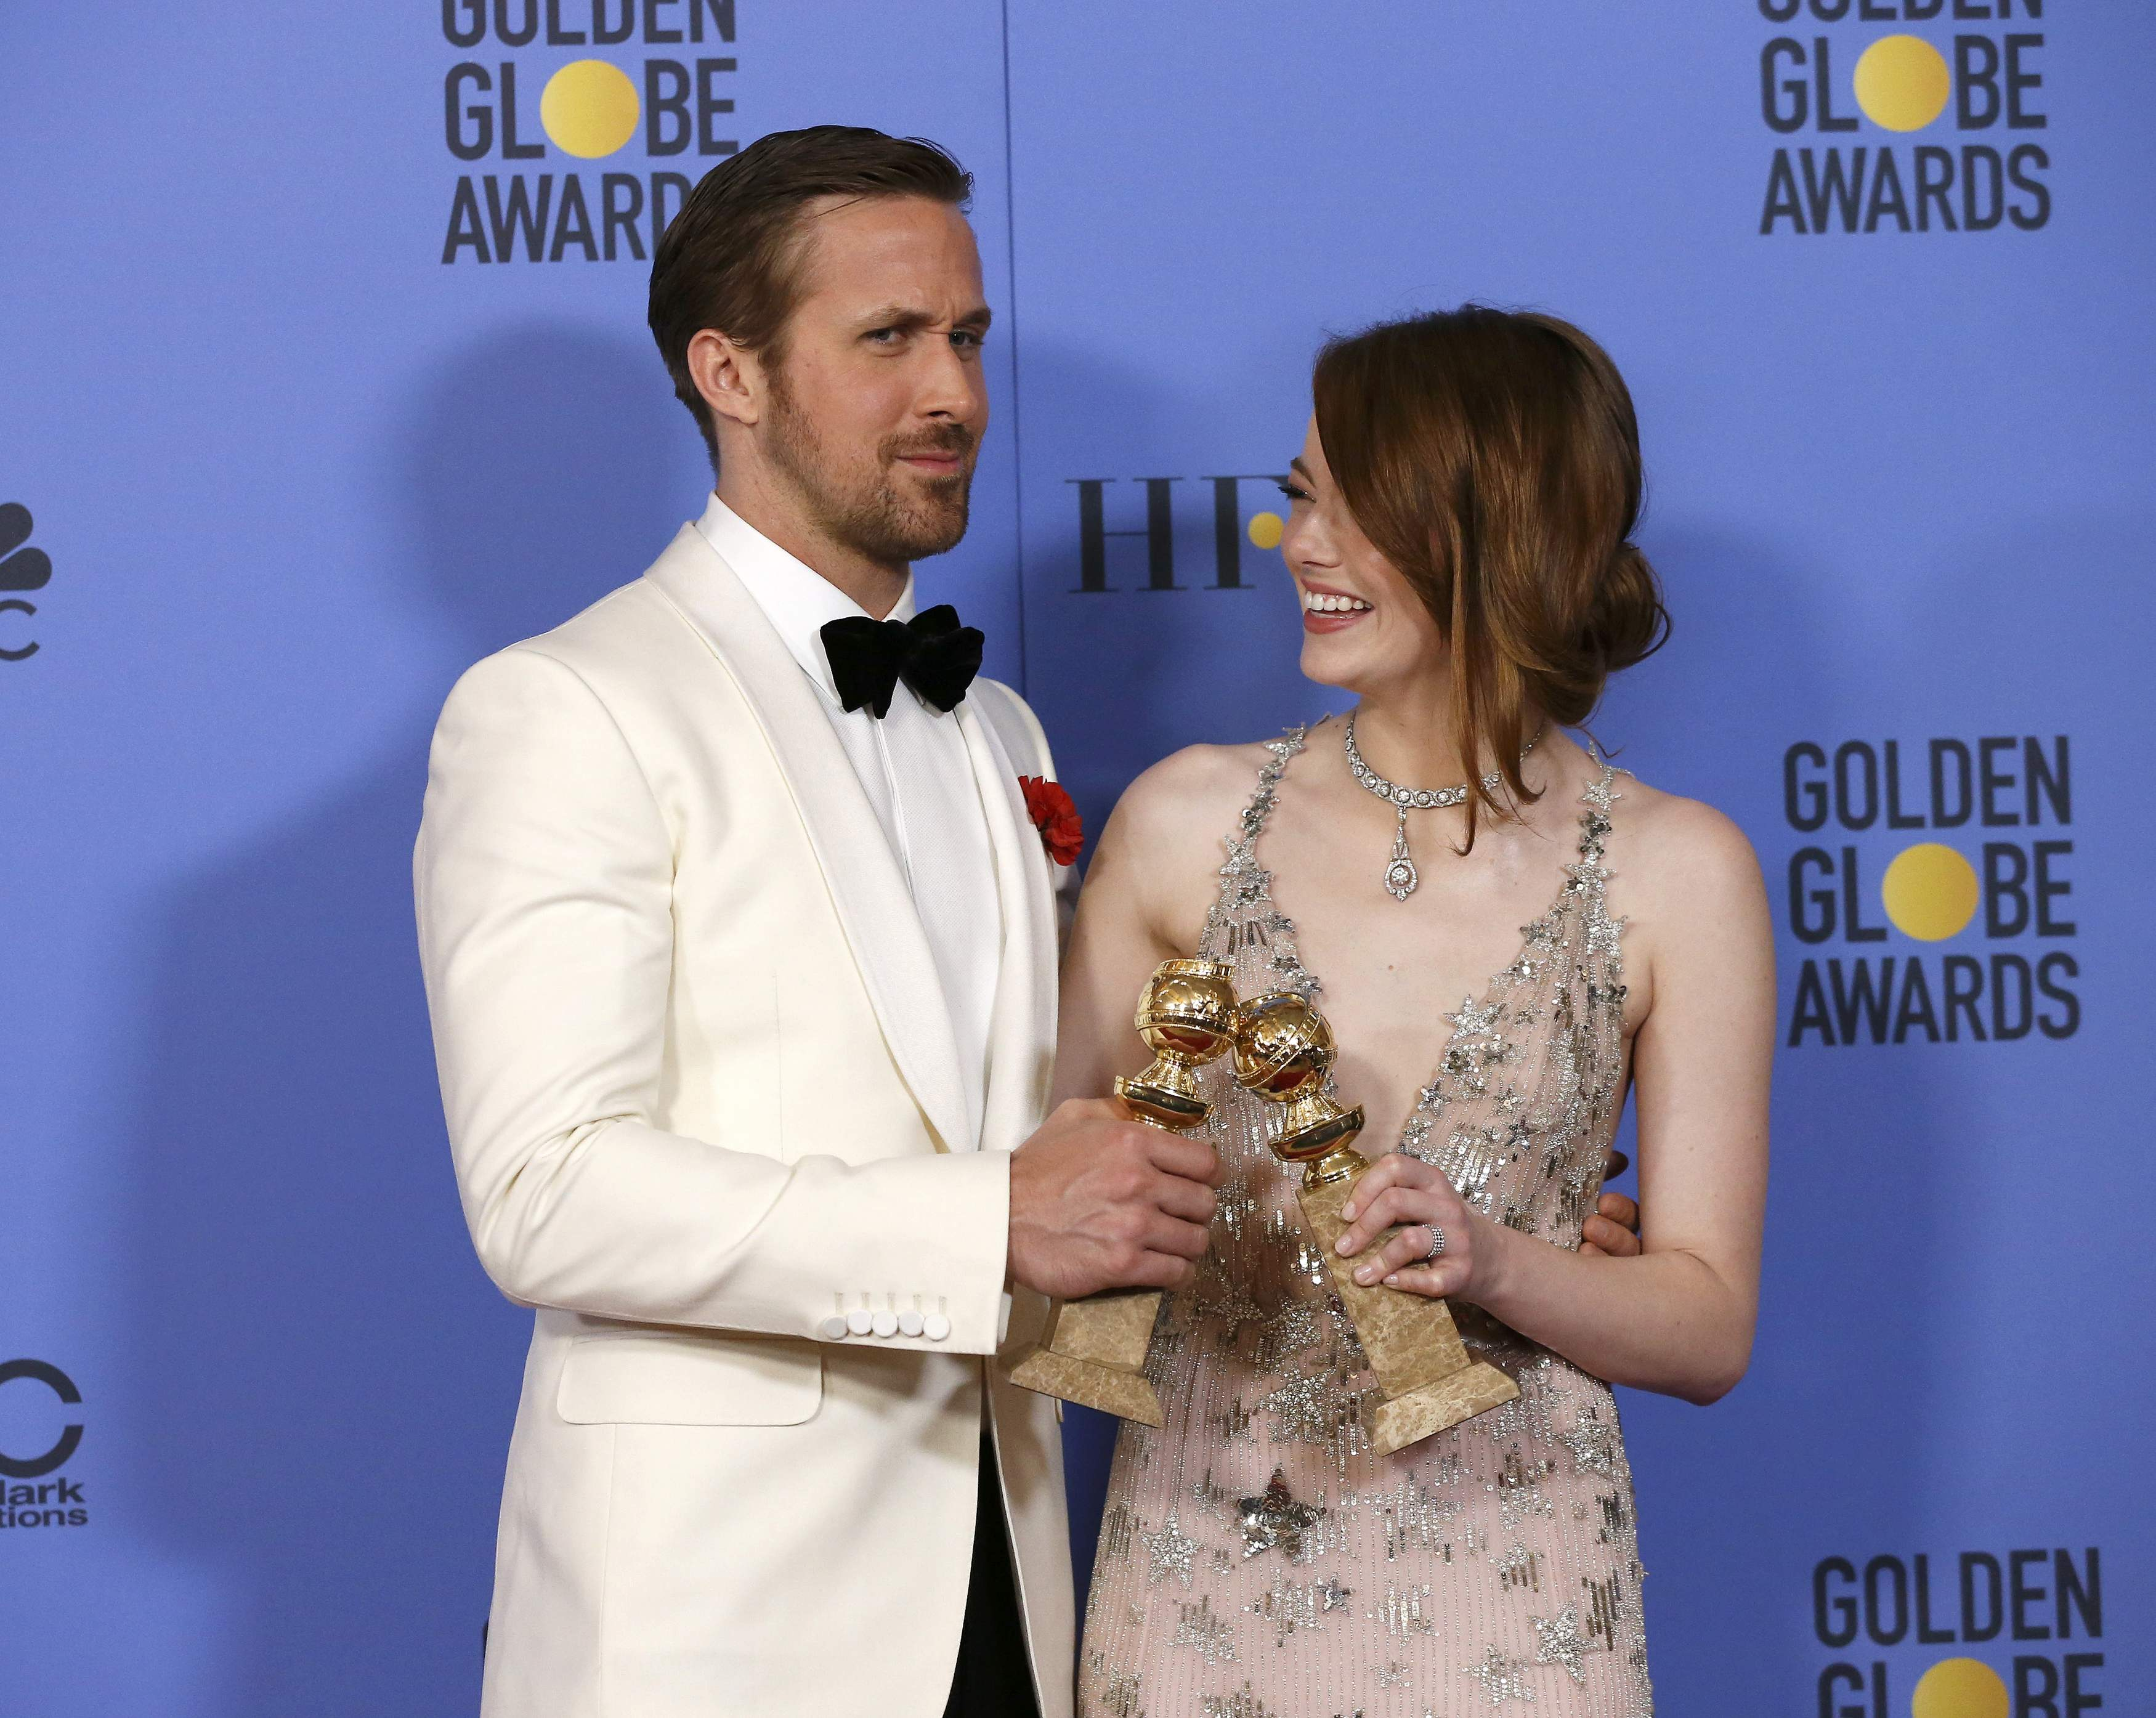 Ryan Gosling and Emma Stone pose with their awards during the 74th Annual Golden Globe Awards in Beverly Hills